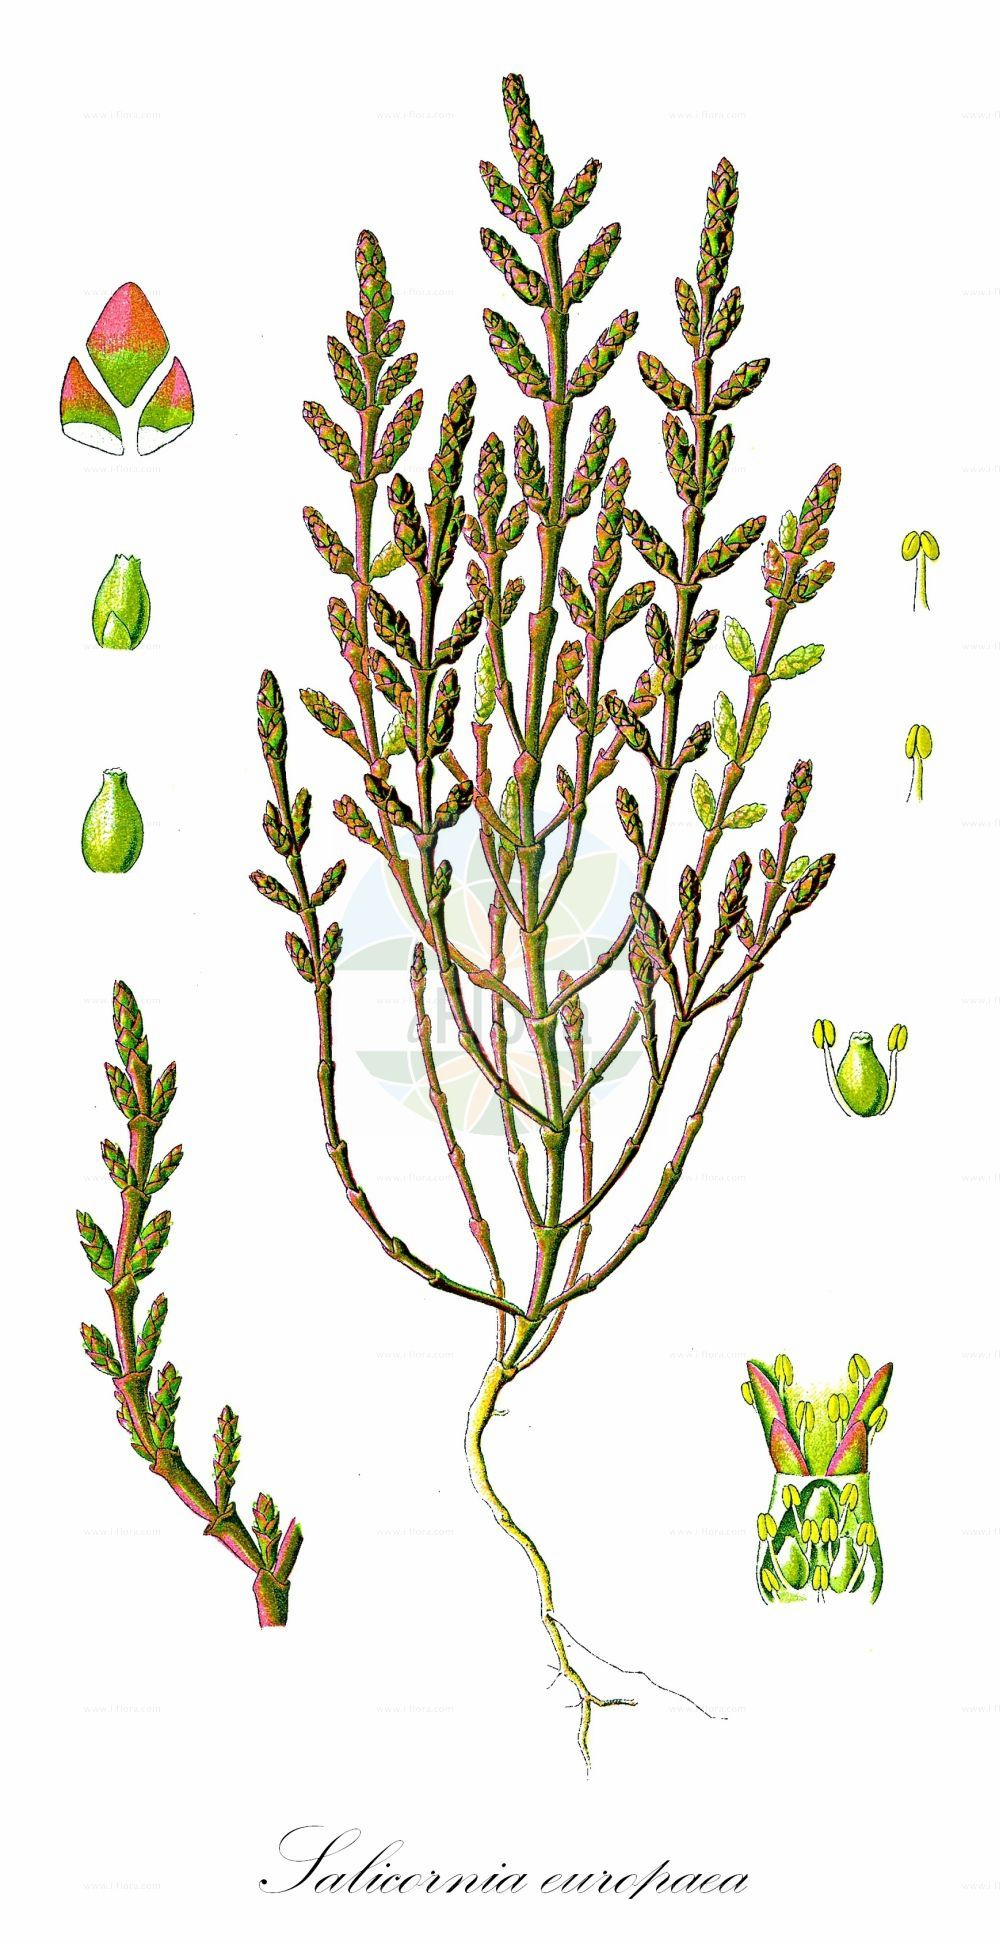 Historische Abbildung von Salicornia europaea (Europaeischer Queller - Common Glasswort). Das Bild zeigt Blatt, Bluete, Frucht und Same. ---- Historical Drawing of Salicornia europaea (Europaeischer Queller - Common Glasswort).The image is showing leaf, flower, fruit and seed.(Salicornia europaea,Europaeischer Queller,Common Glasswort,Salicornia annua,Salicornia herbacea,Gewoehnlicher Queller,Kurzaehren-Queller,Queller,Purple Glasswort,Glaucous Glasswort,Red Swampfire,Slender Grasswort,Salicornia,Queller,Glassworts,Amaranthaceae,Fuchsschwanzgewaechse,Pigweed family,Blatt,Bluete,Frucht,Same,leaf,flower,fruit,seed,Thomé (1885))